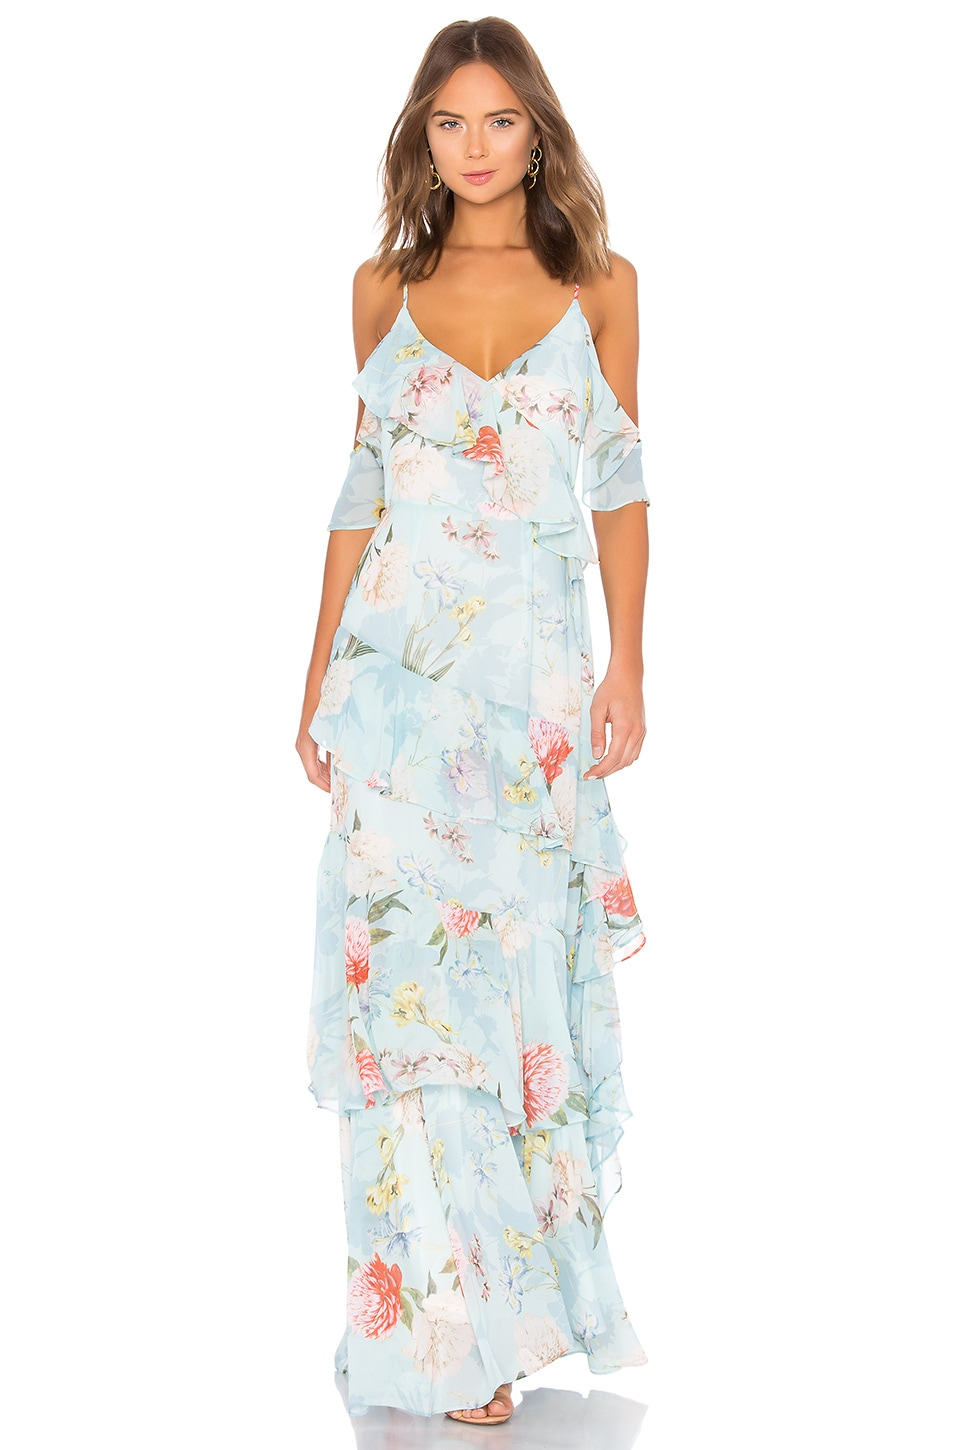 Yumi Kim Hearts Desire Maxi Dress in Forever Yours Jade